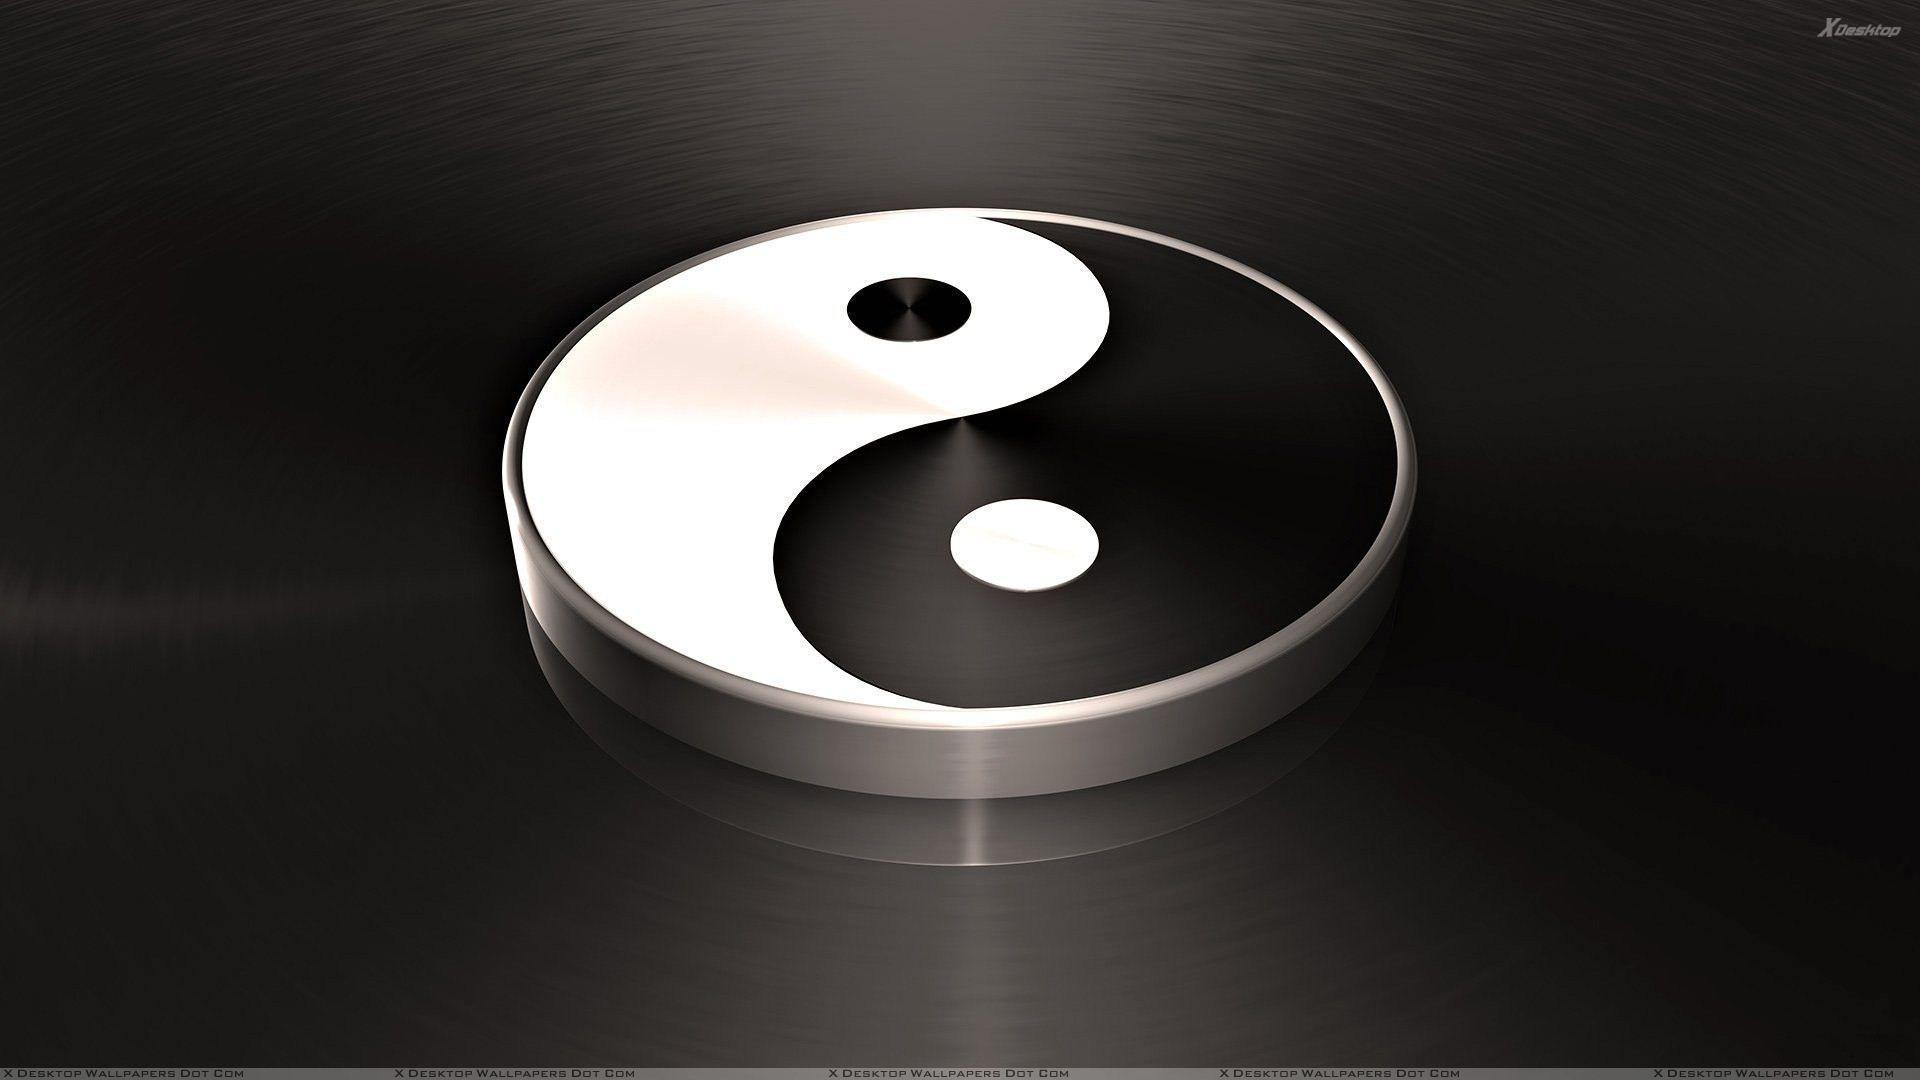 Ying Yang Wallpapers 1920×1080 Ying Yang Wallpapers